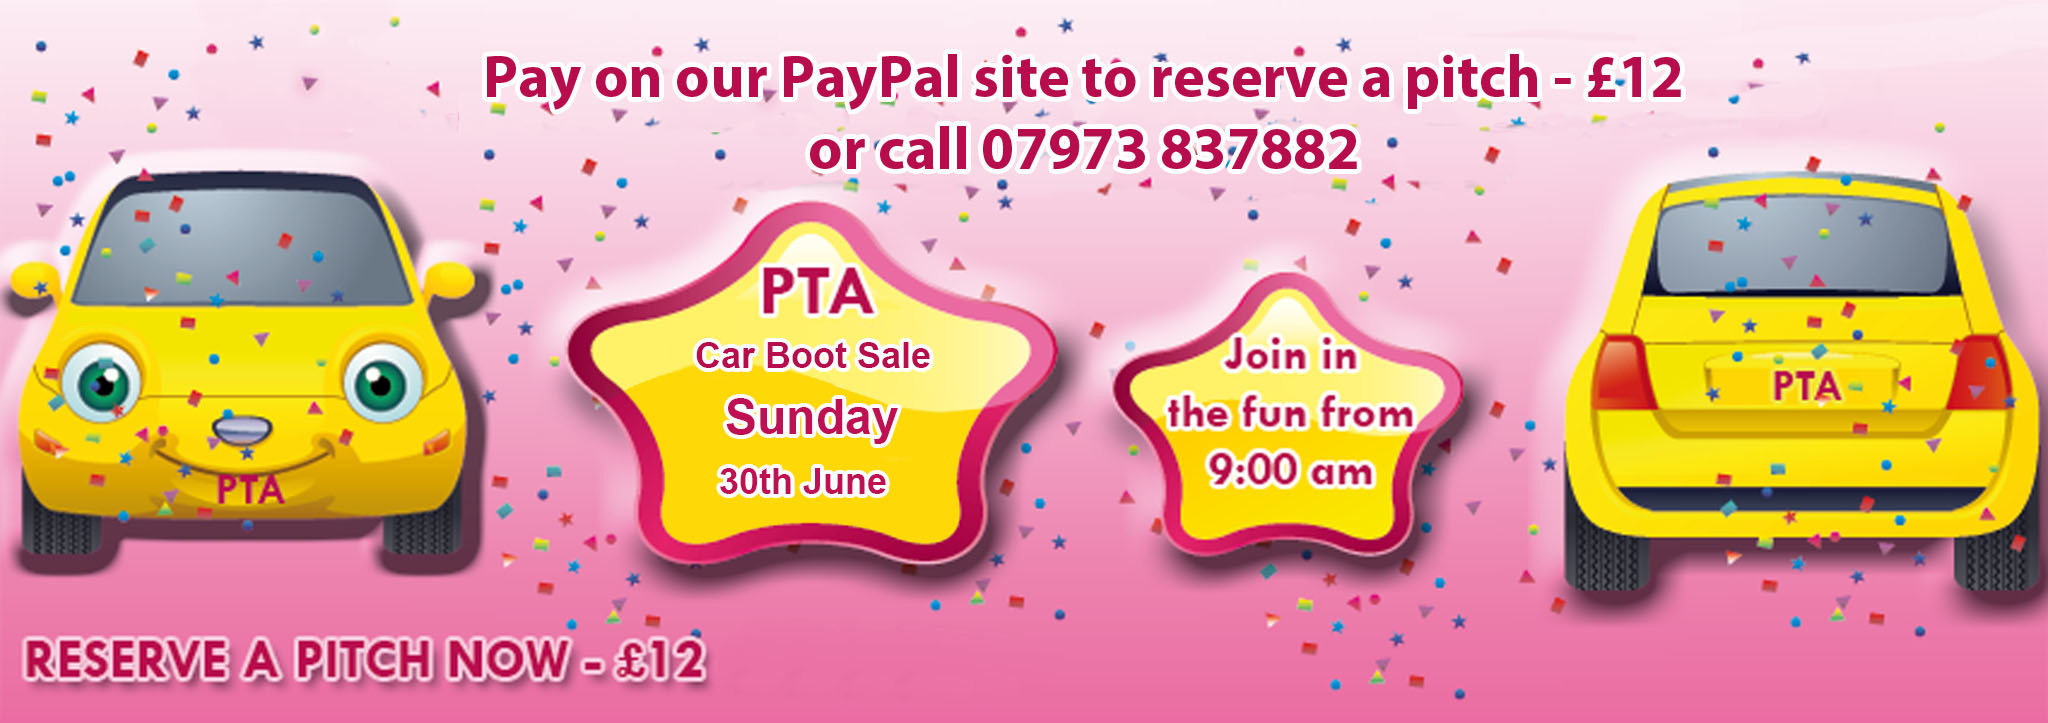 PTA Carboot 30th June 2019